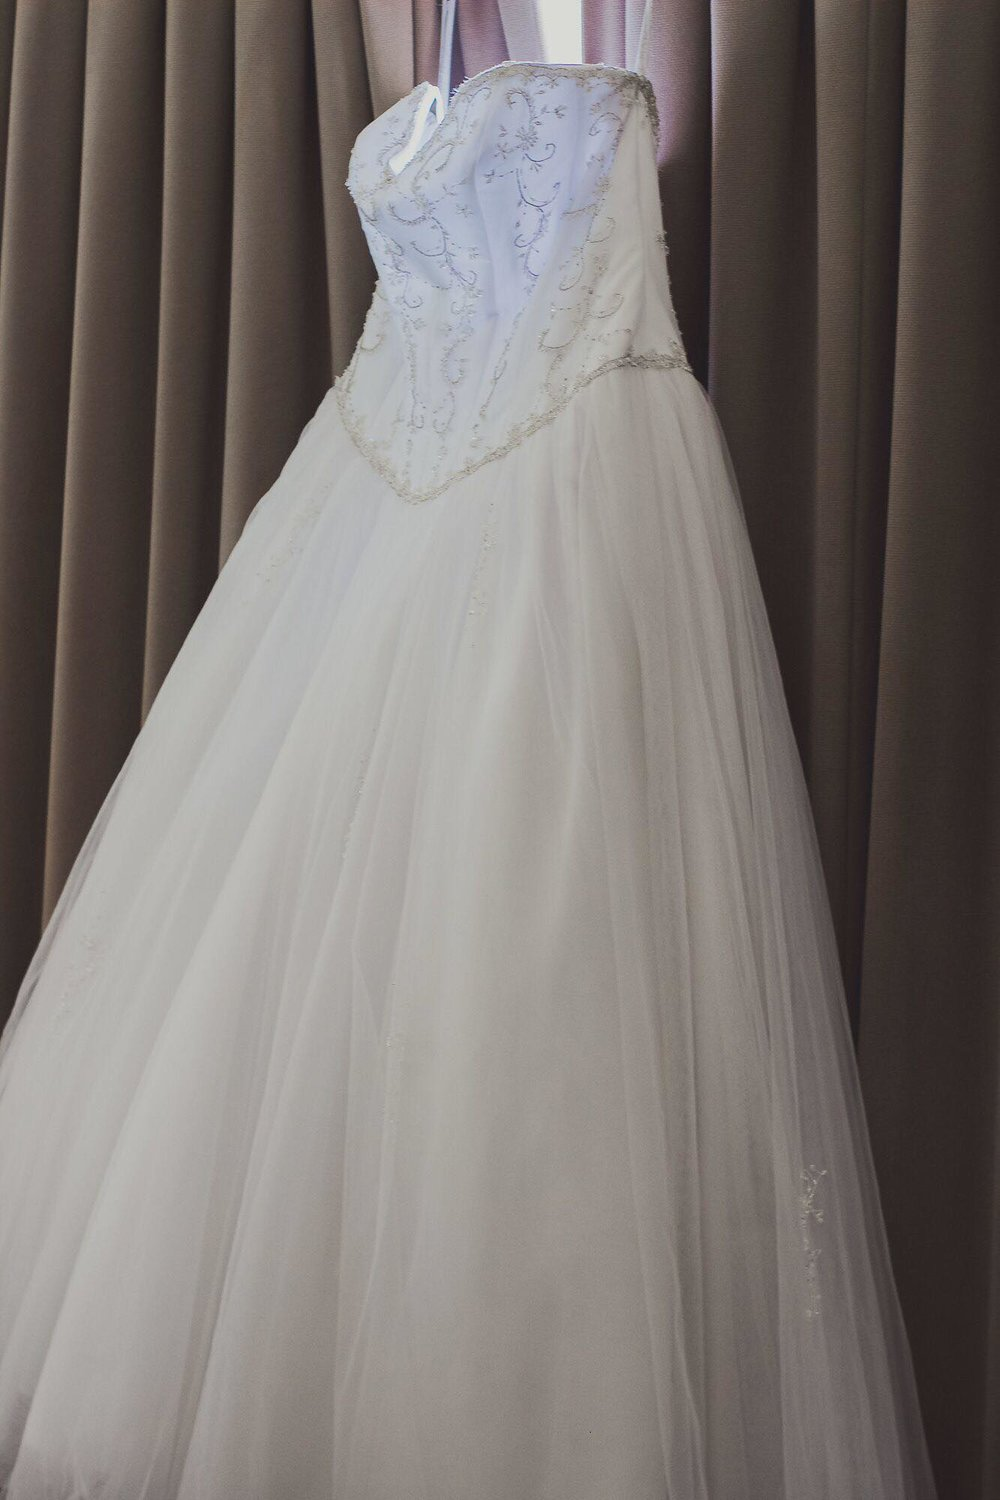 The Gown waiting to be worn | Bridal Outlet Bride Kelley